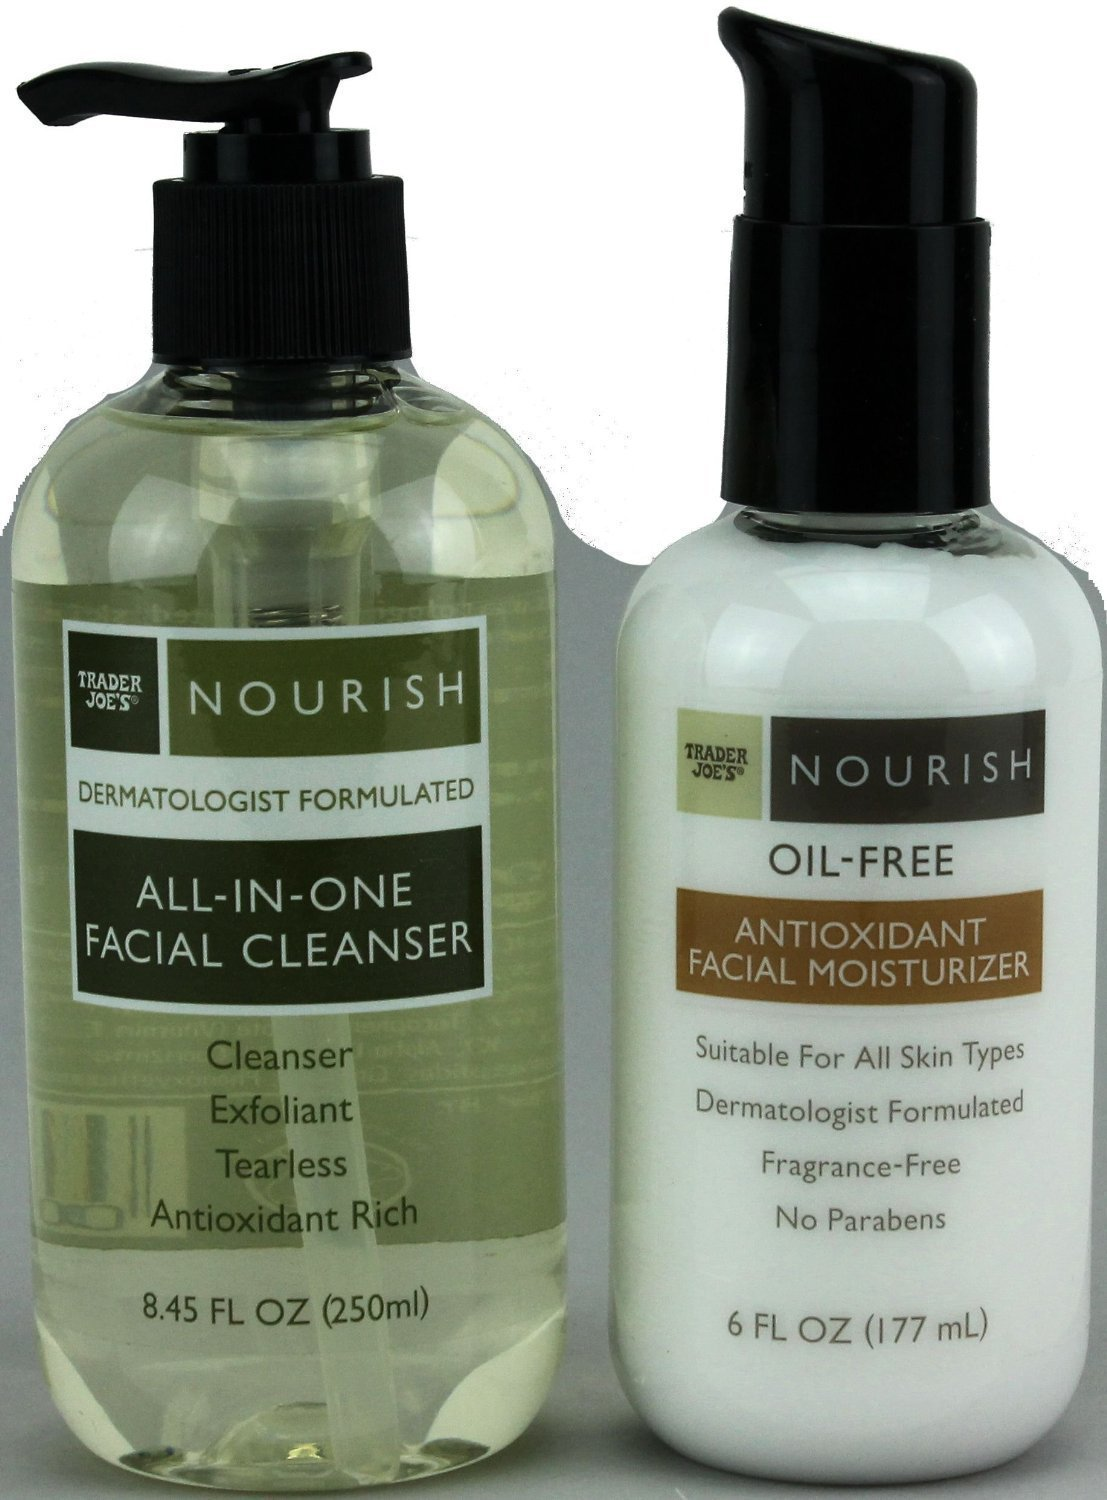 trader joe 39 s nourish antioxidant facial serum beauty. Black Bedroom Furniture Sets. Home Design Ideas